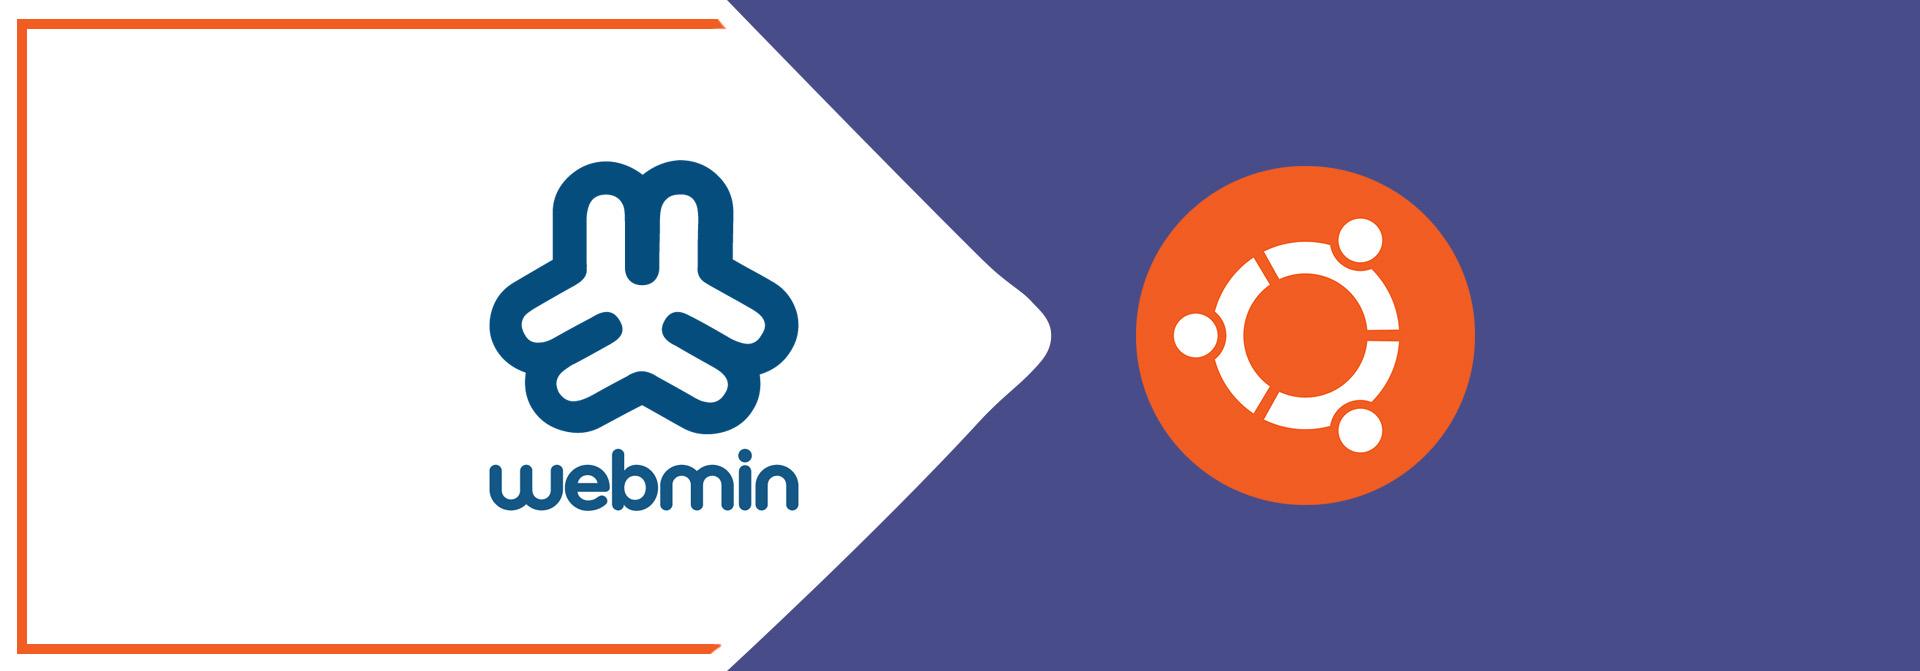 How To Install And Secure Webmin On Ubuntu 20.04 LTS With SSL